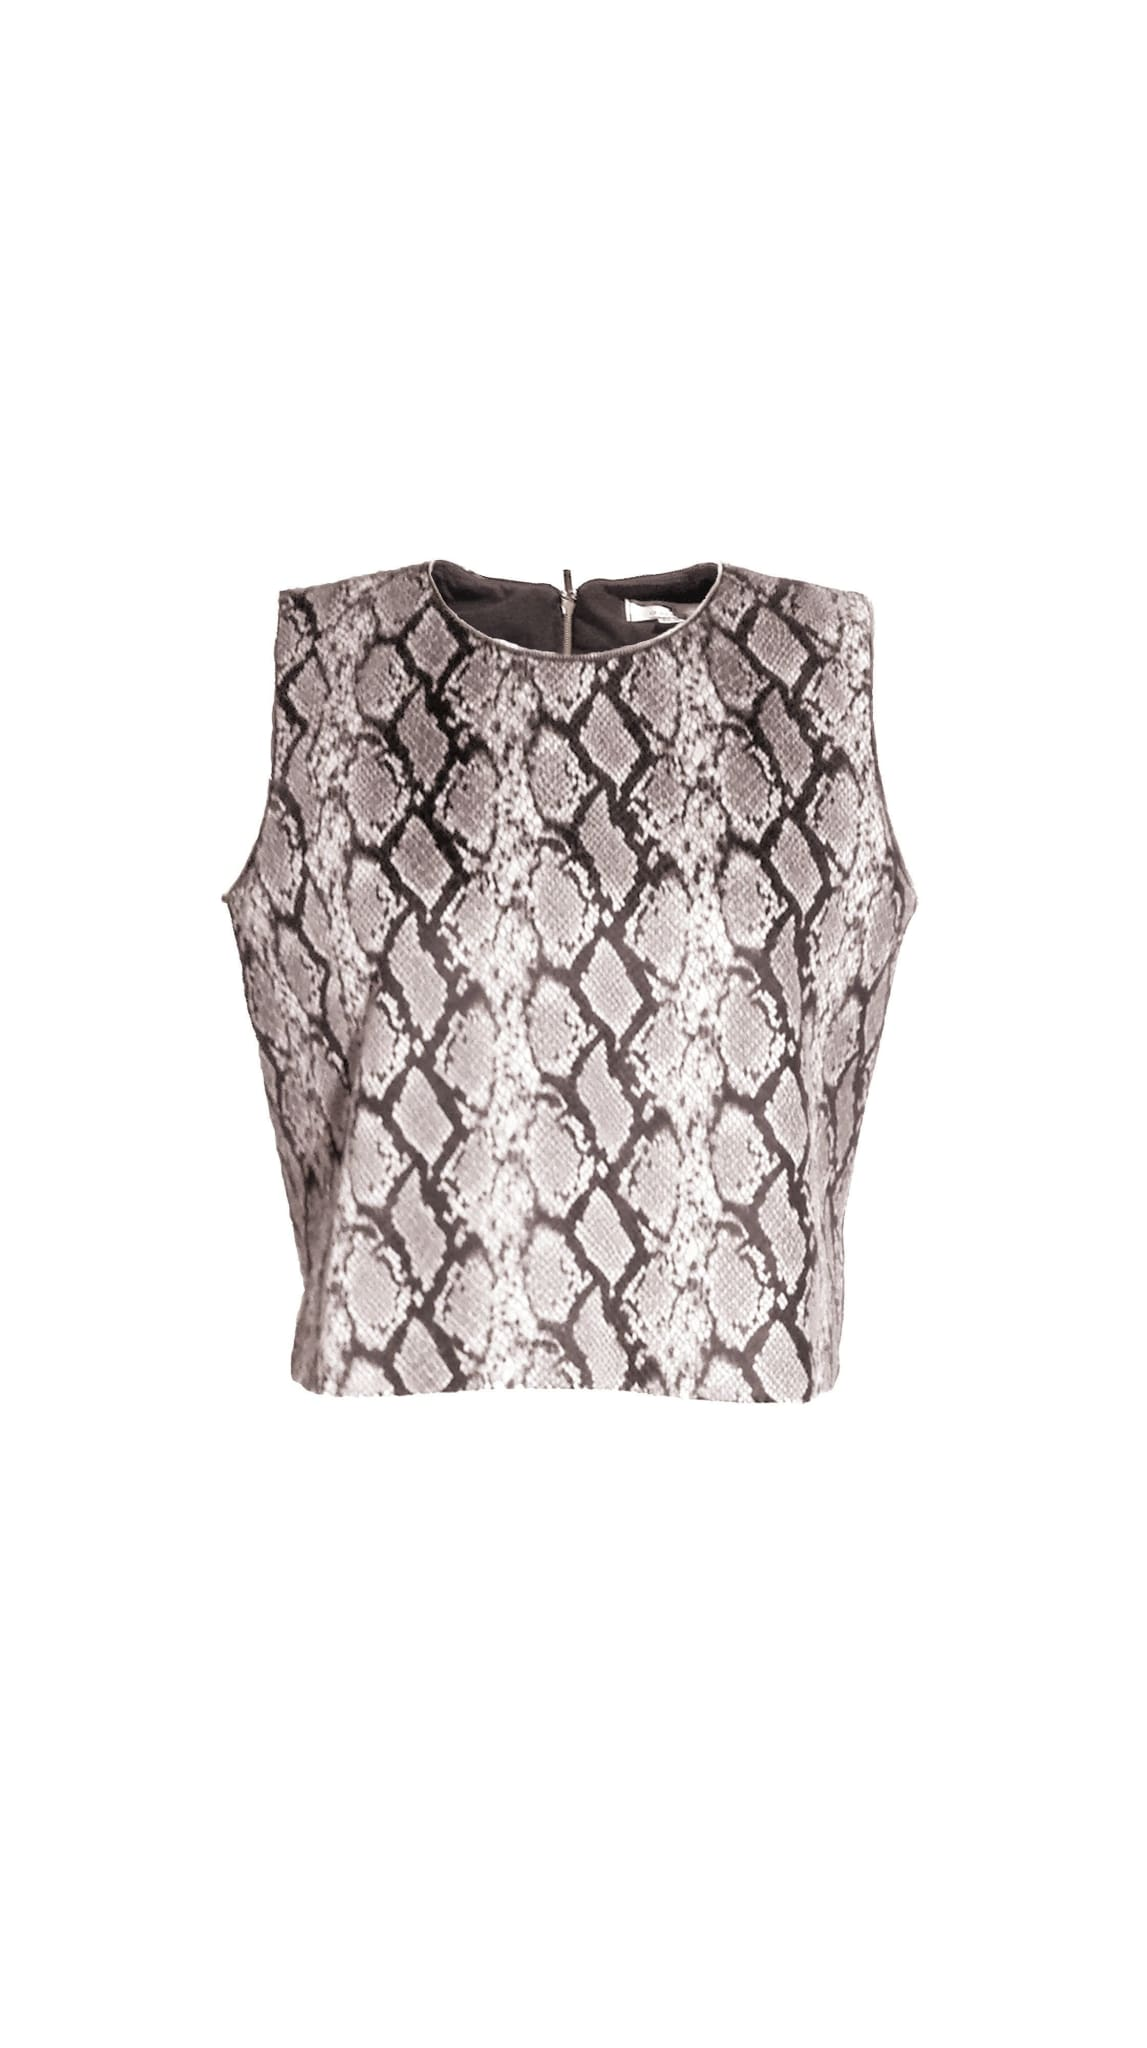 Brown Vegan Snake Skin Top by Chanho Jang | Nineteenth Amendment